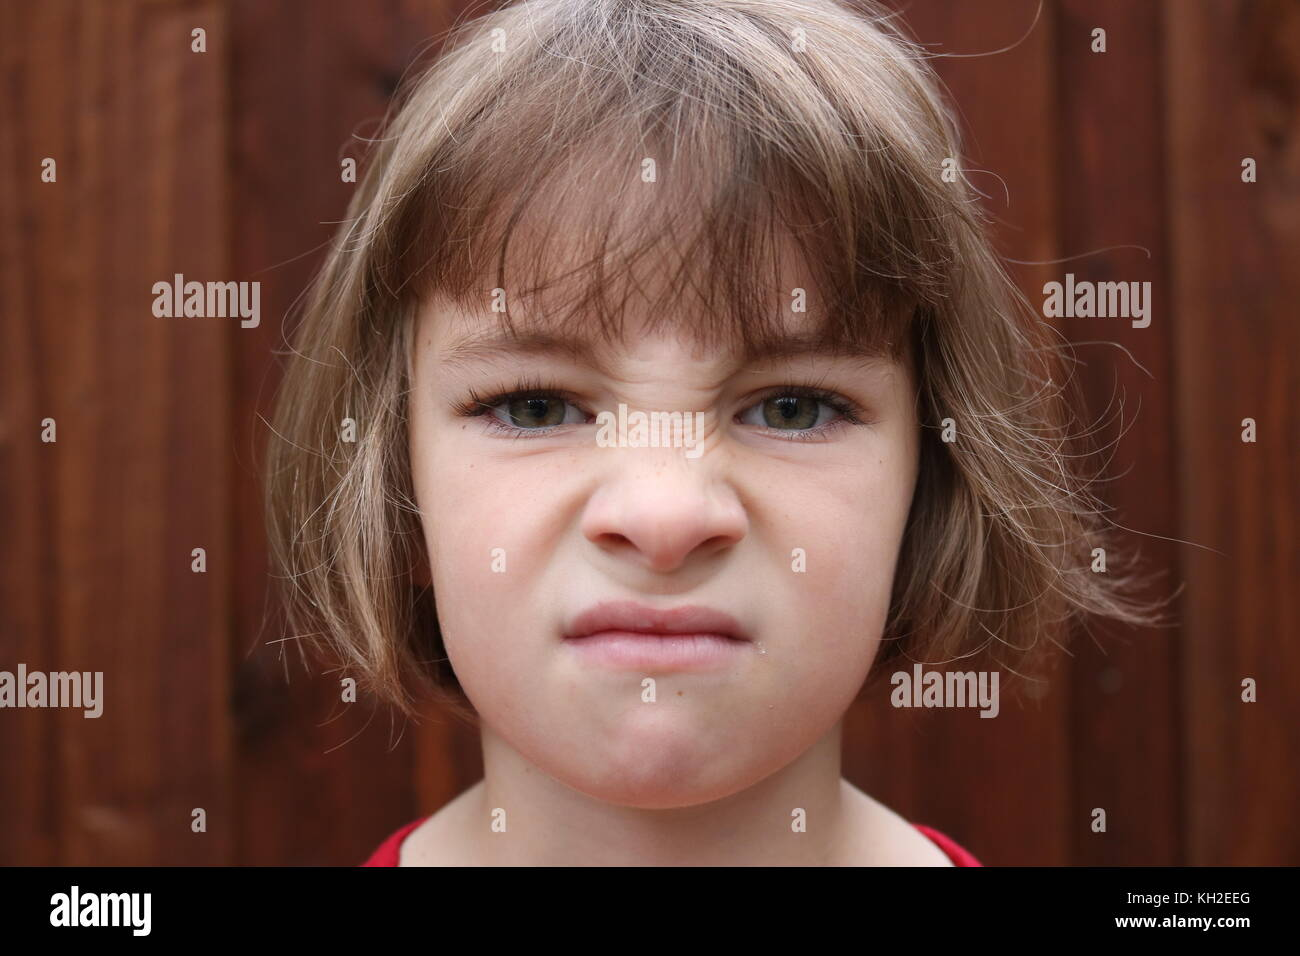 Portrait of an angry little girl - Stock Image